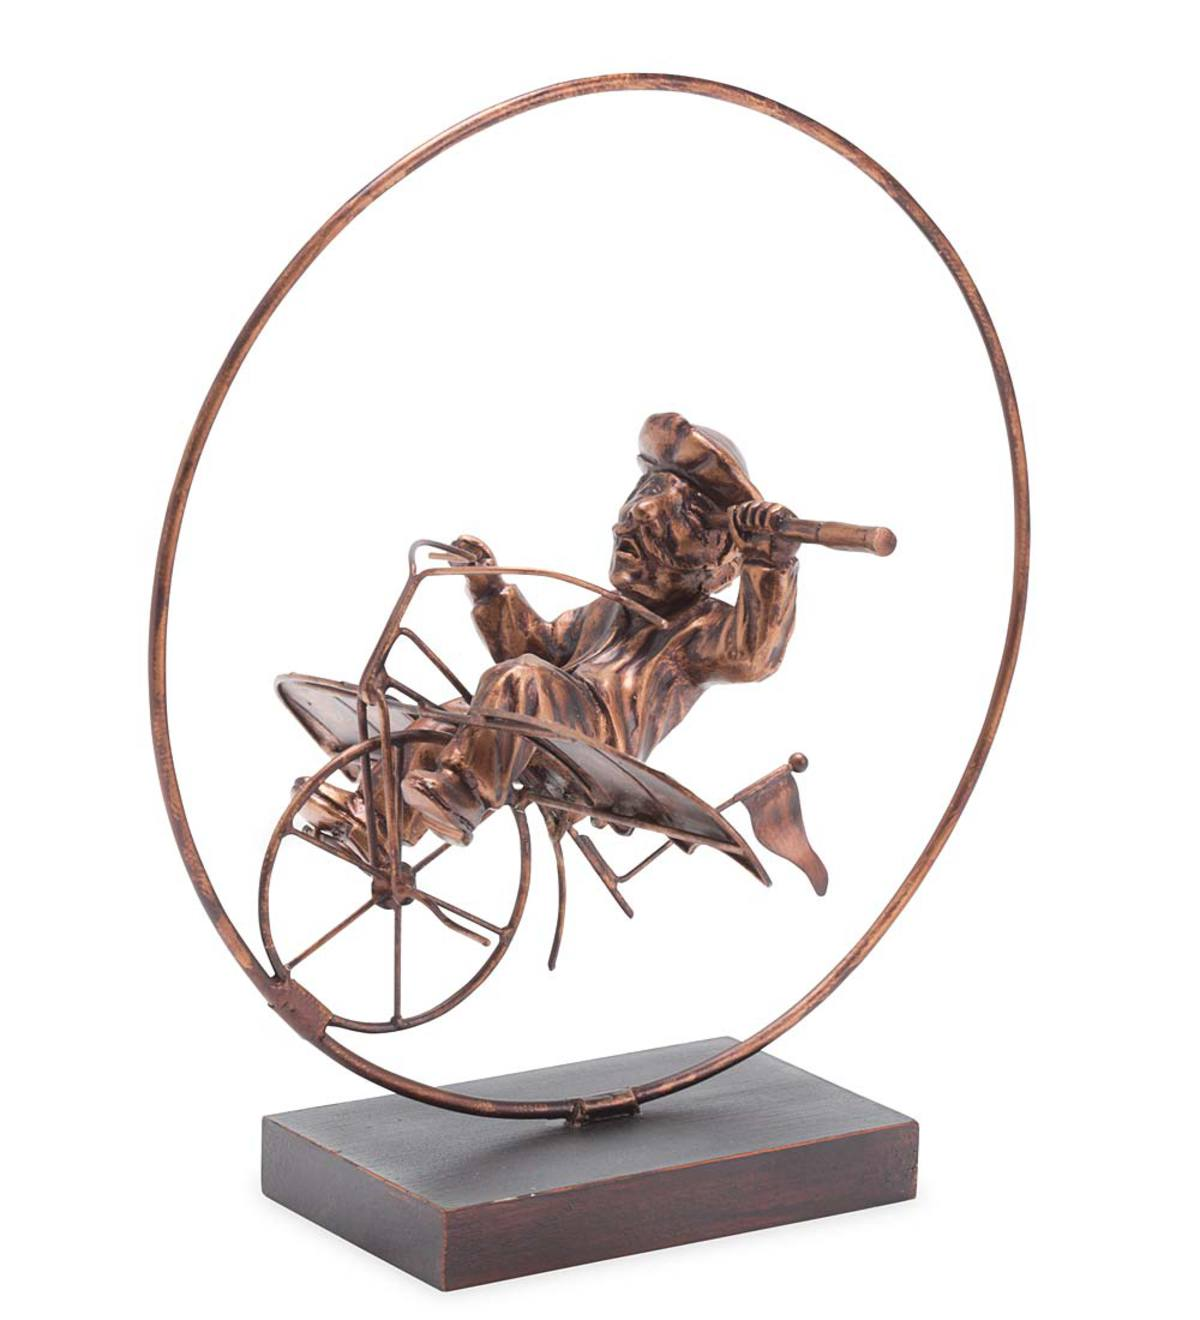 Whimsical Cyclist Sculptures - Unicycle